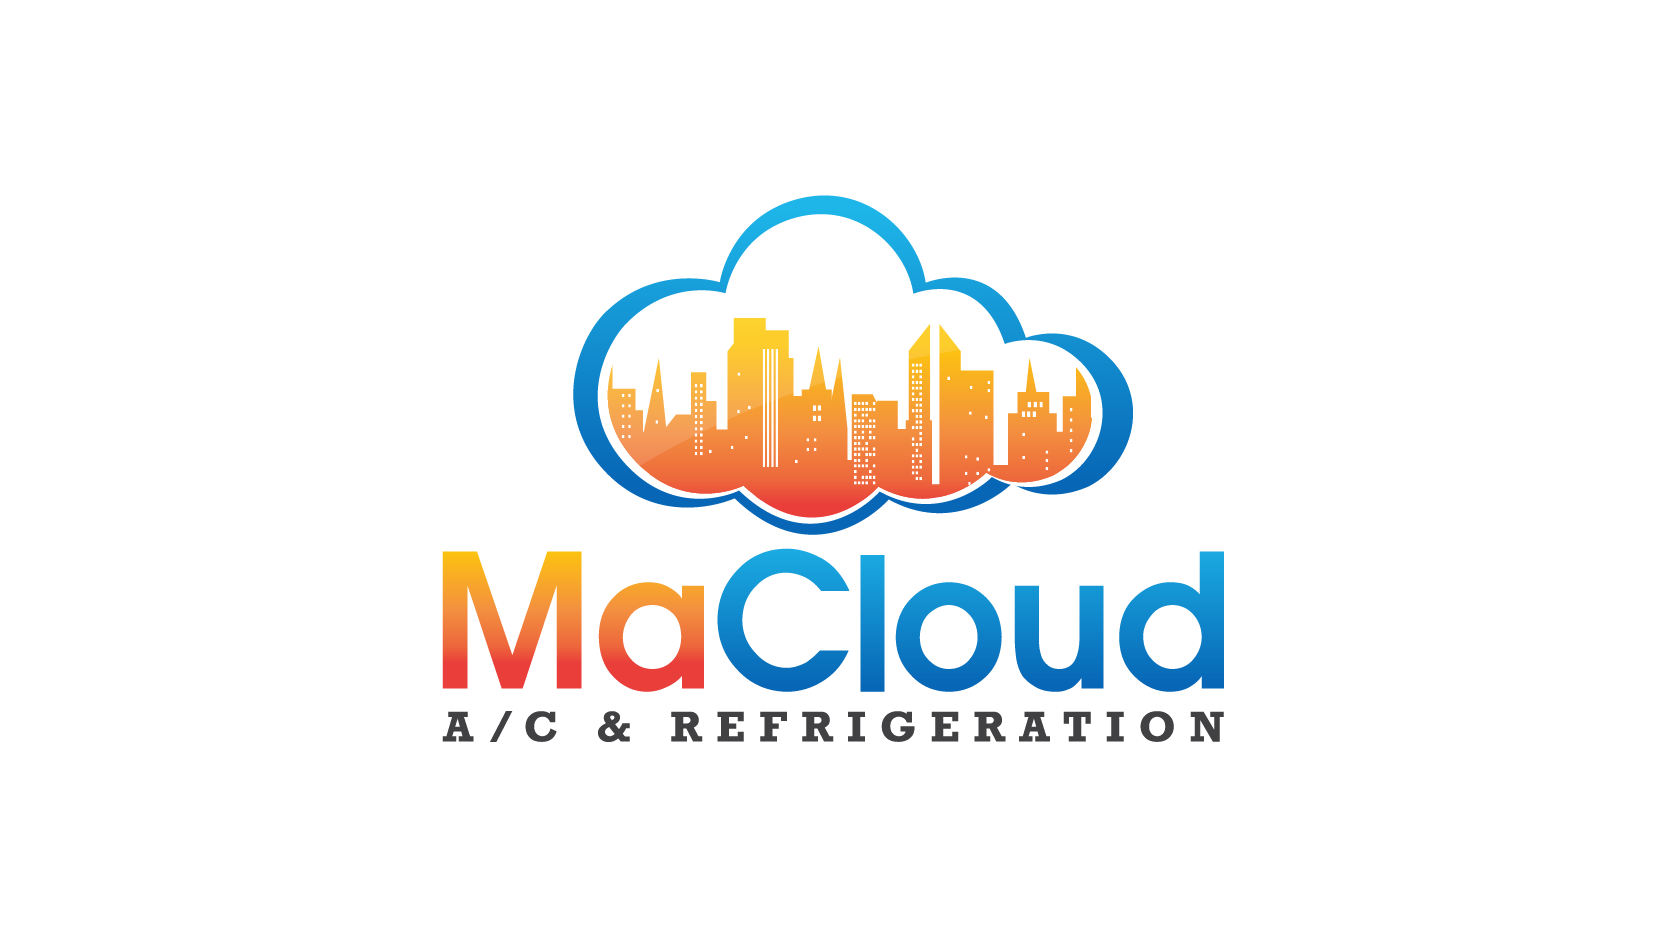 MaCloud AC & Refrigeration Services